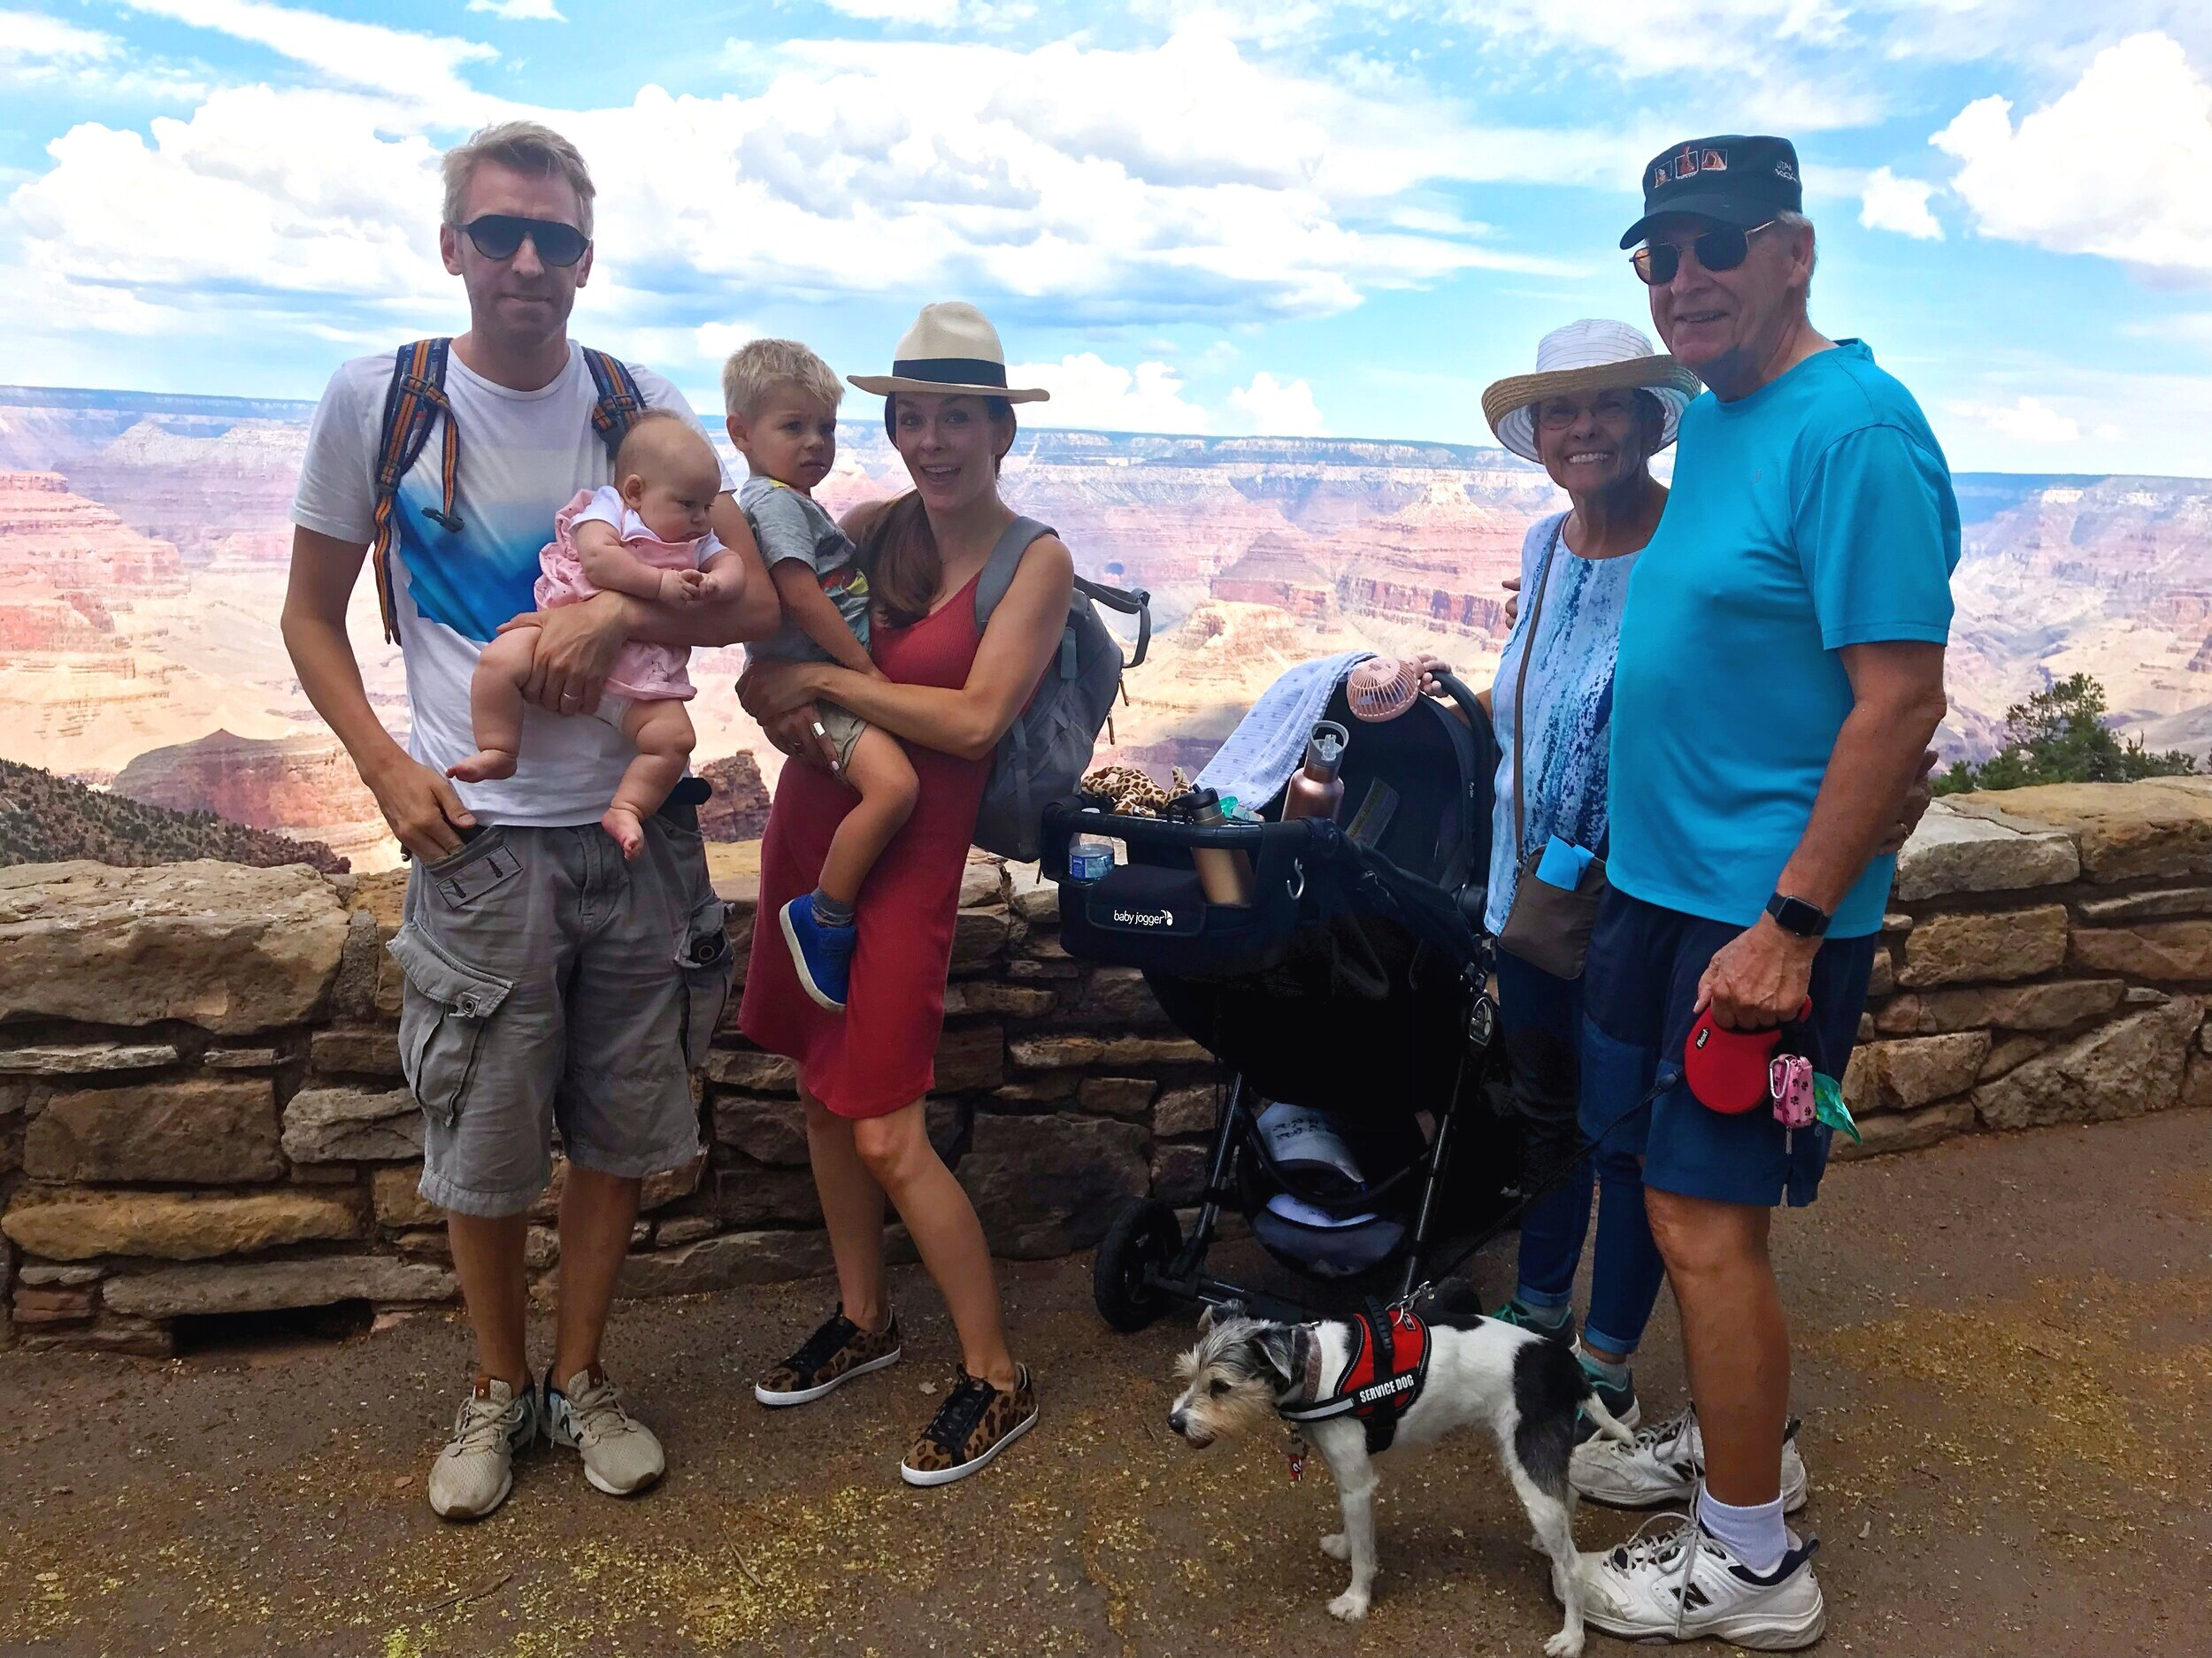 A trip to remember. Great way to celebrate Grandparents day early at the Grand Canyon in Arizona.